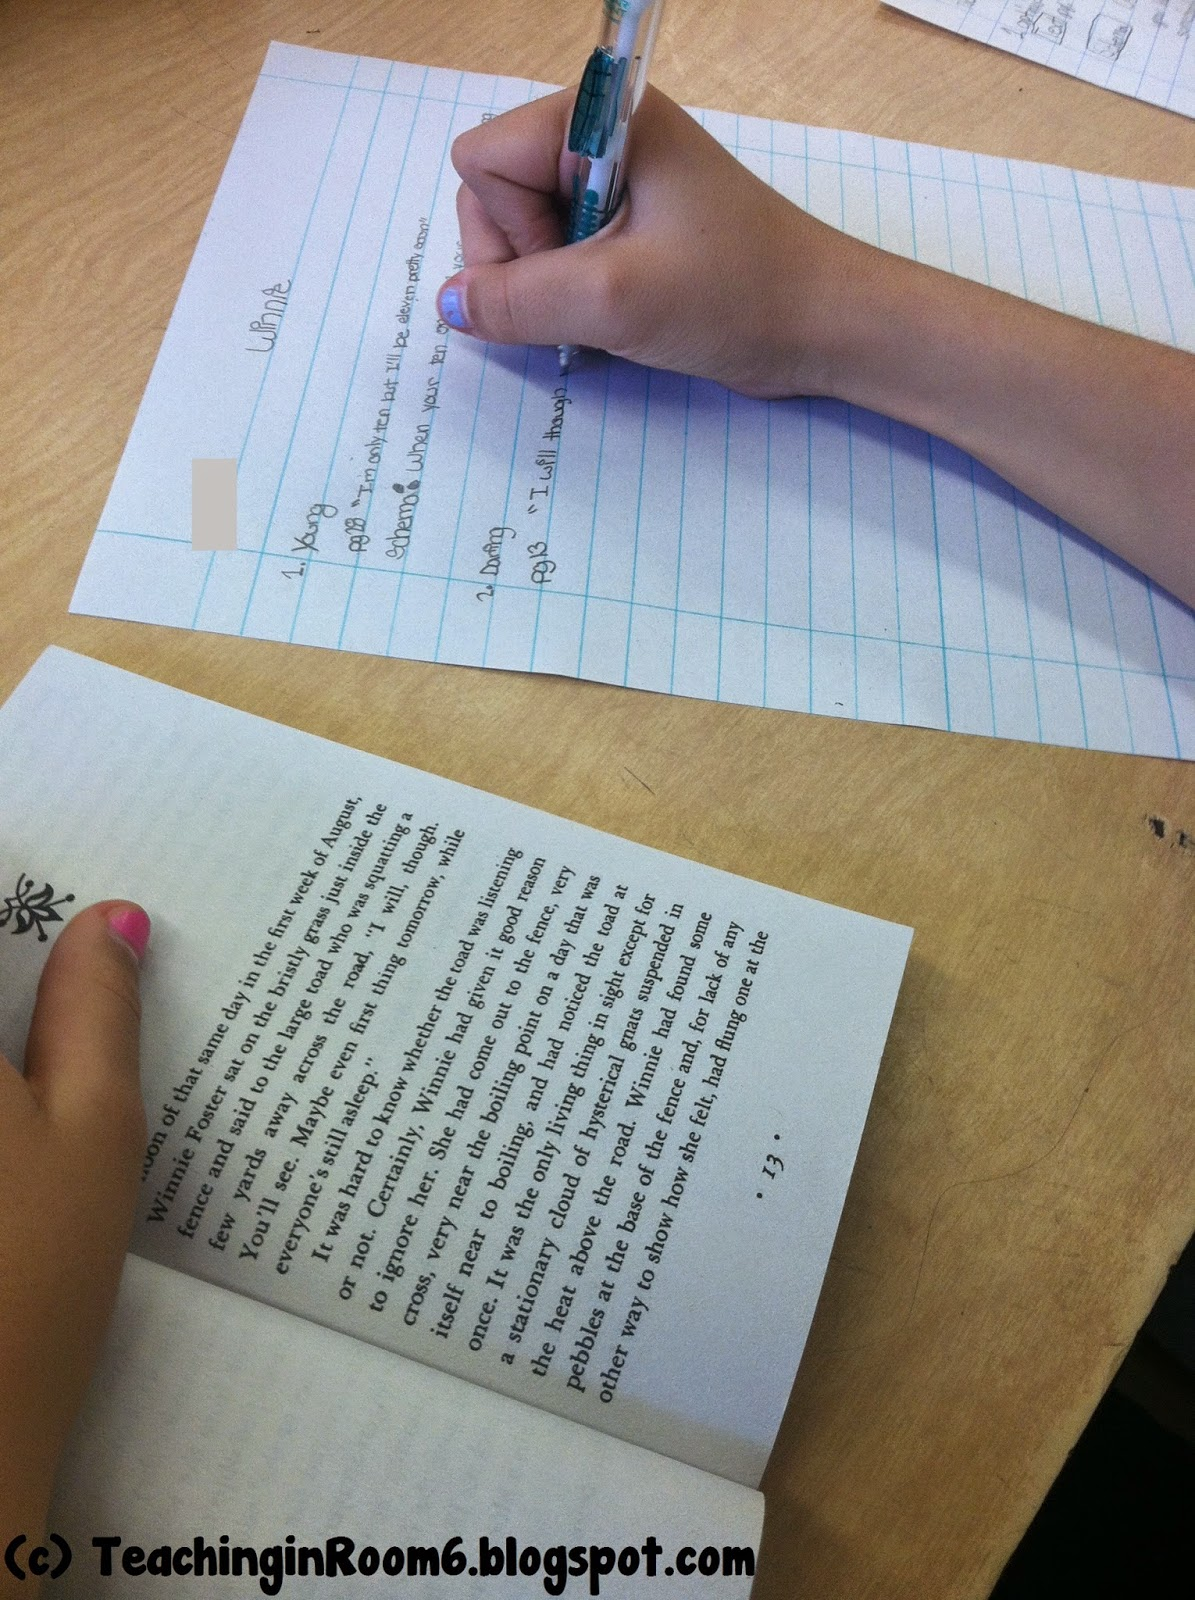 How would you create a list using words from text evidence? Grammar wise?